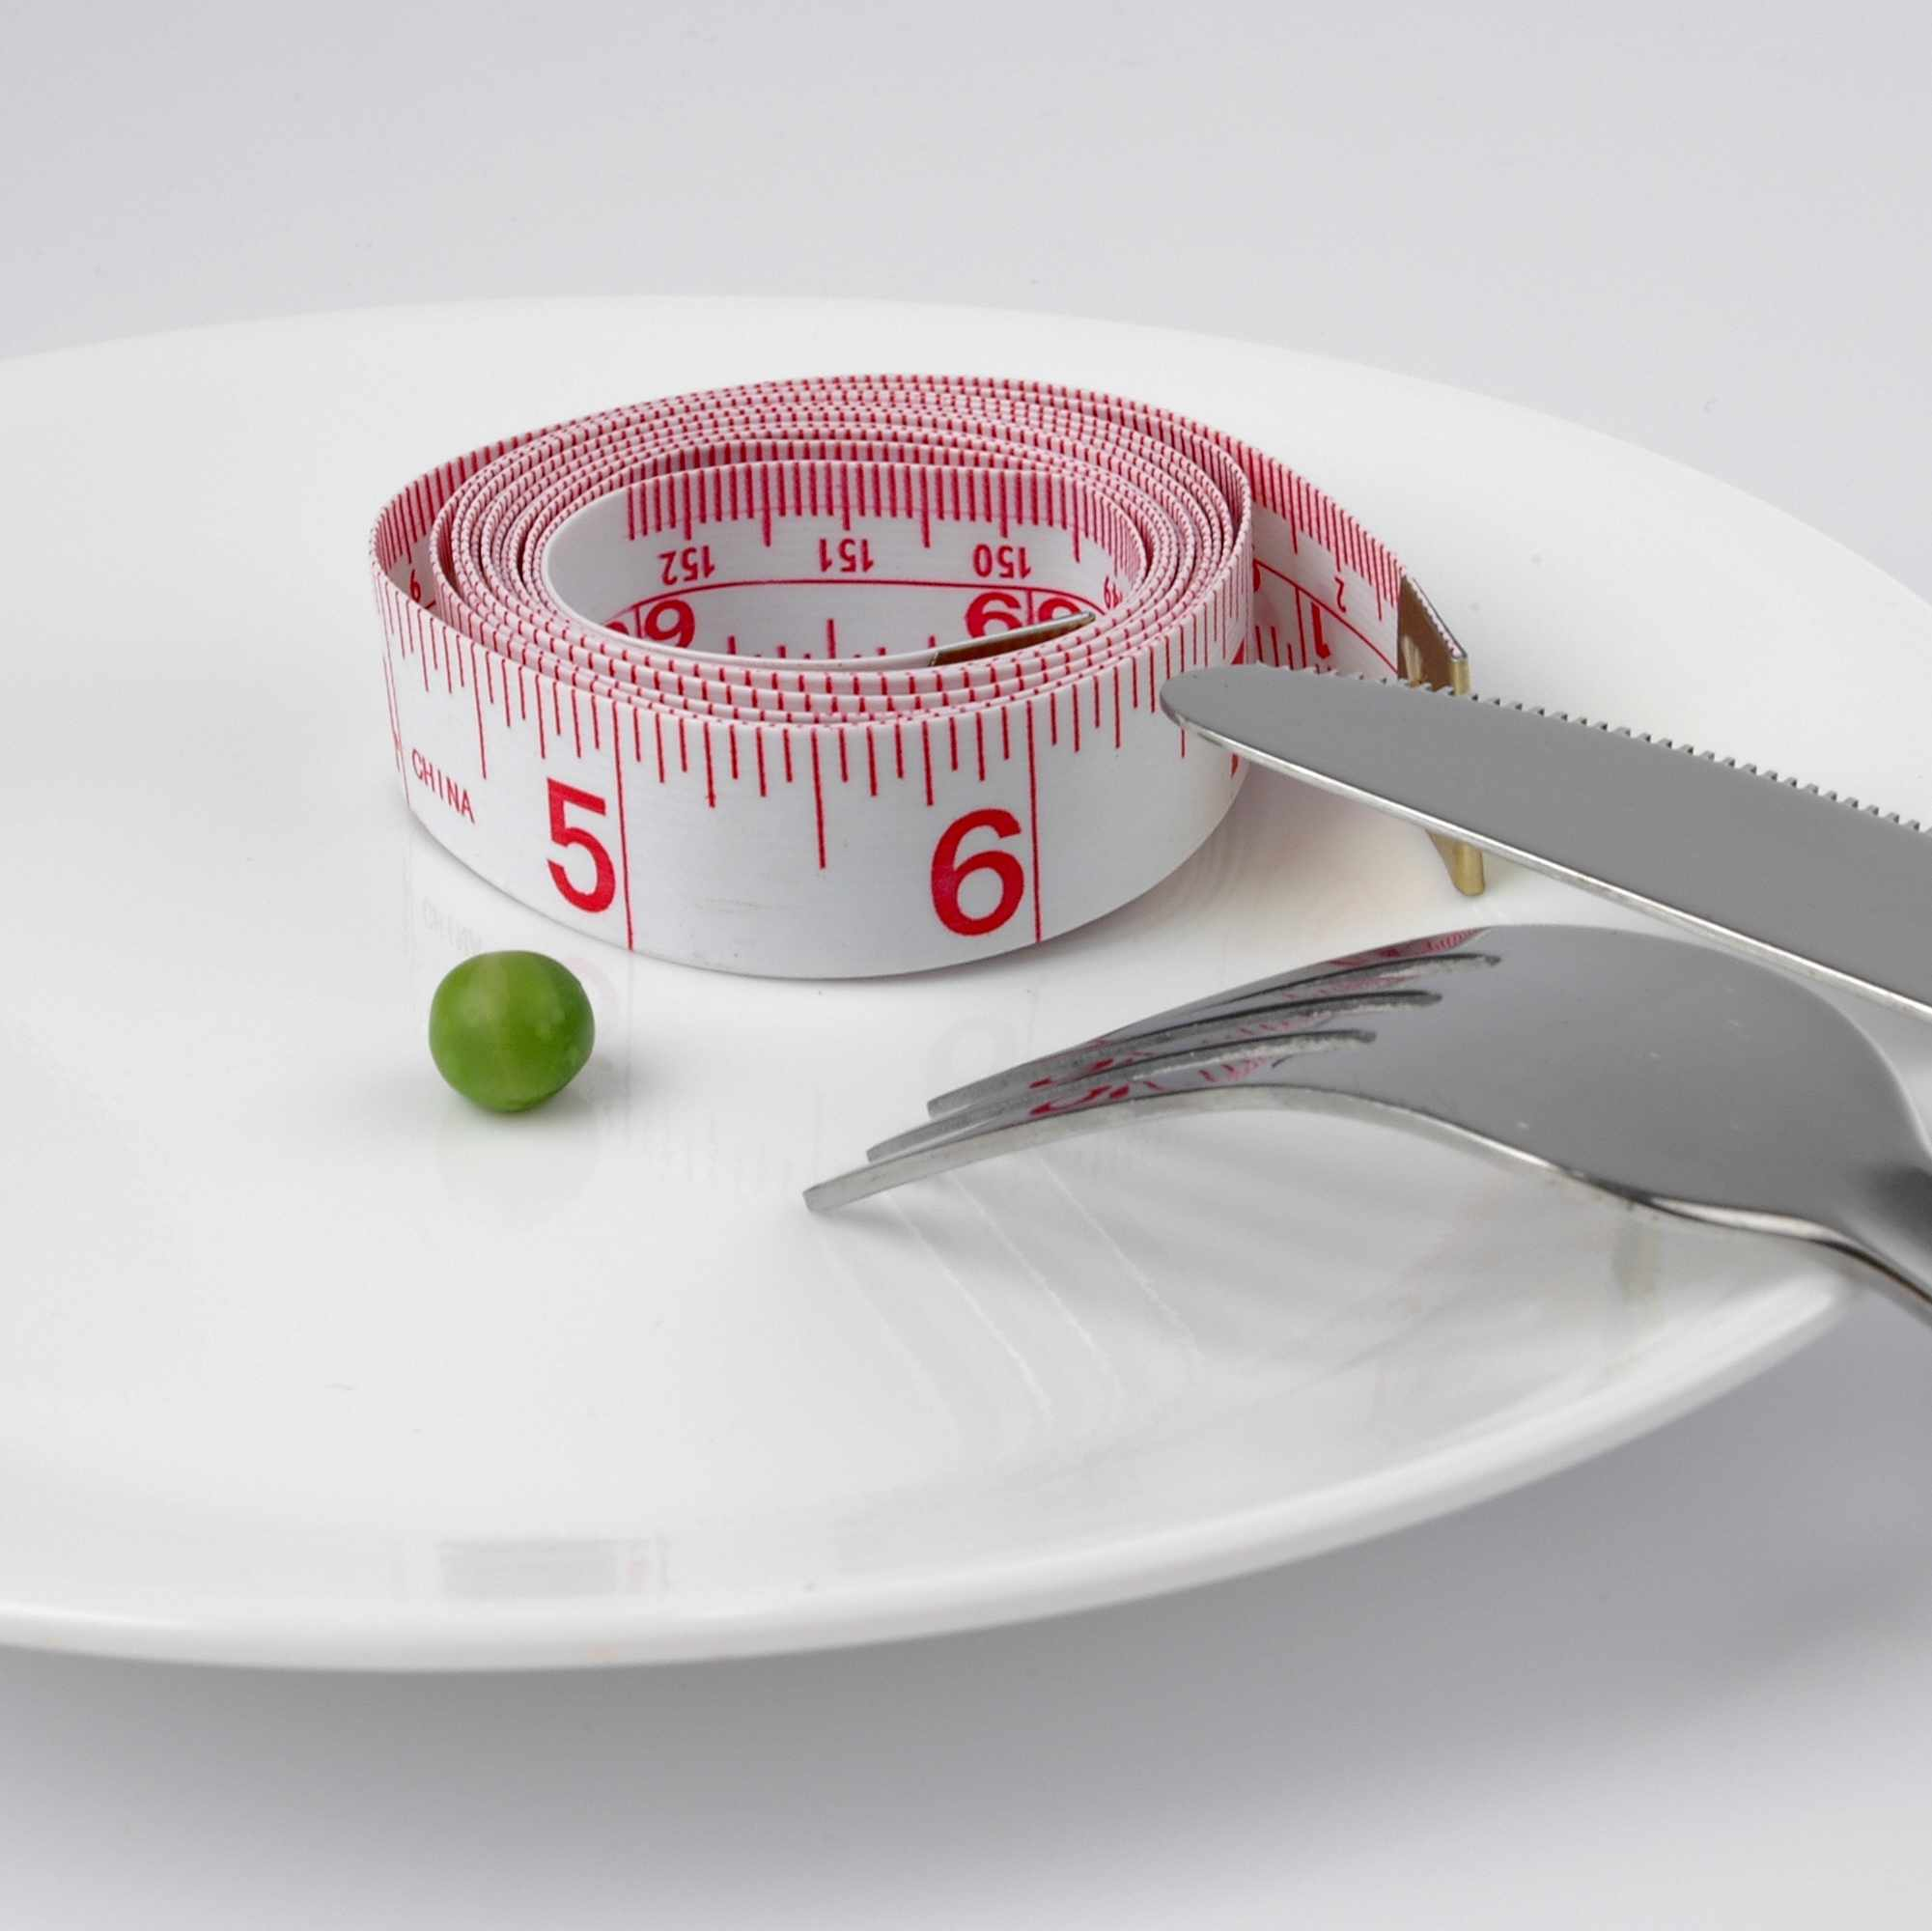 empty plate with tape measure and one pea representing eating disorder